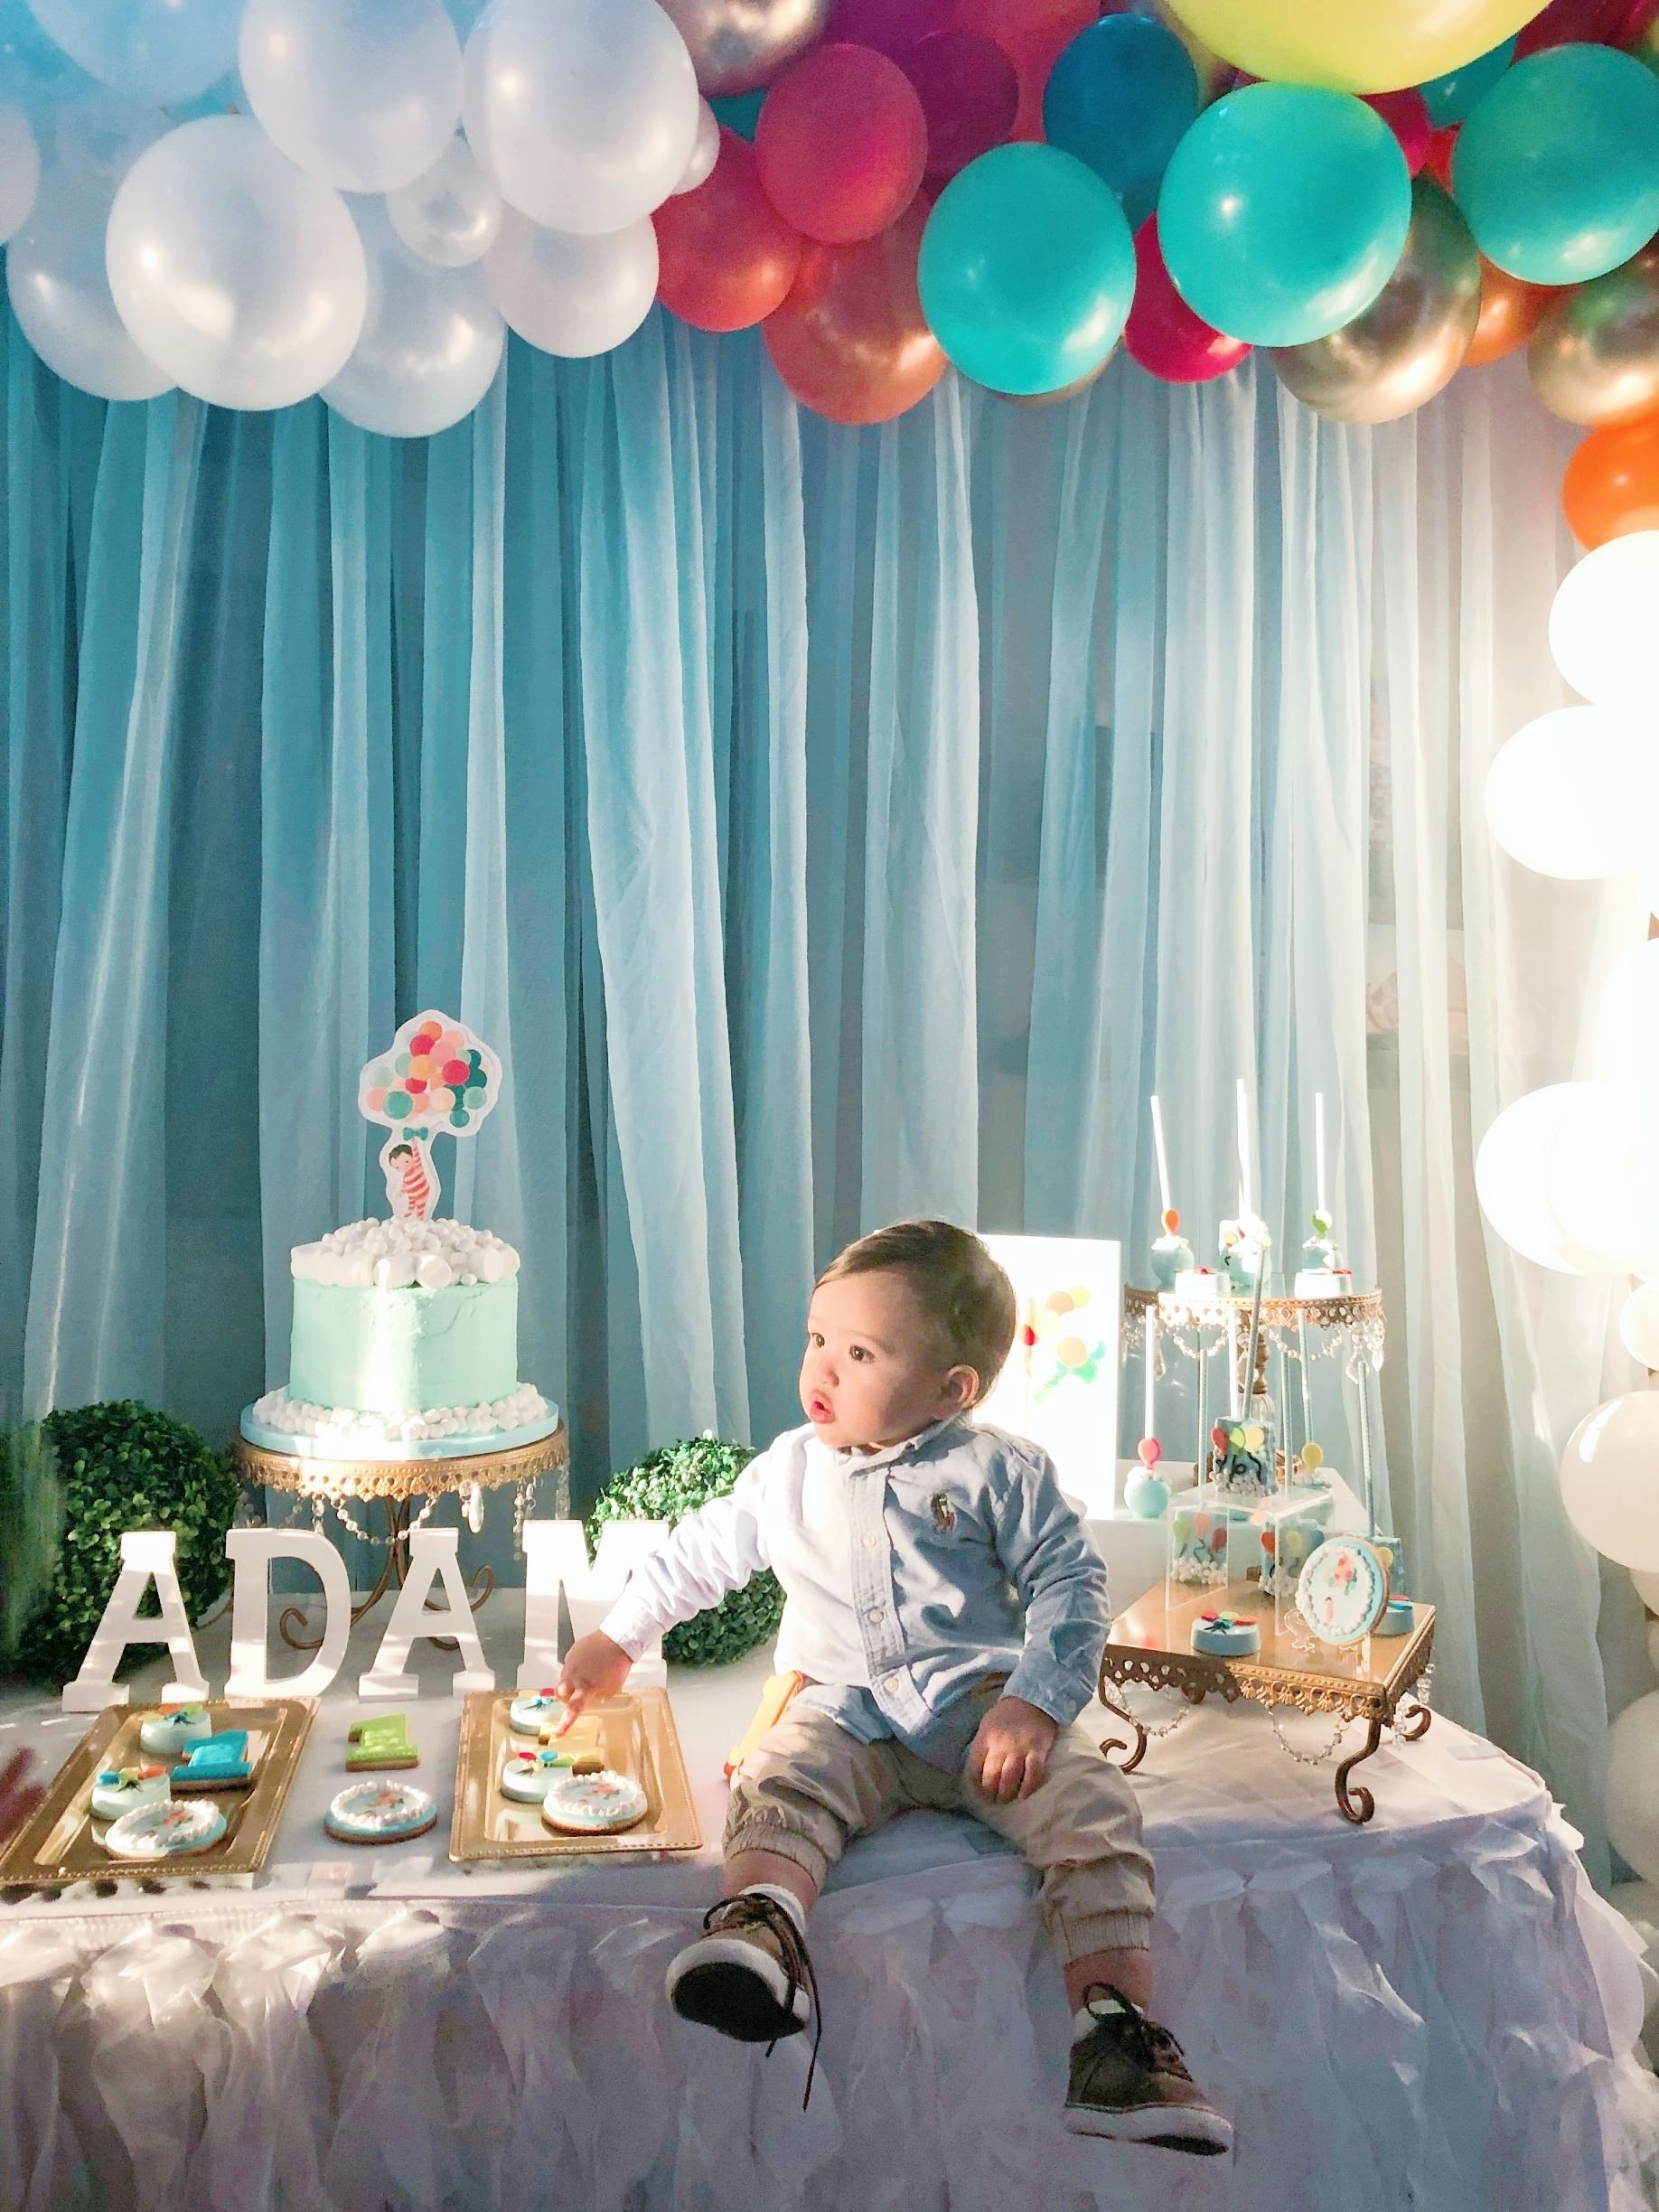 Birthday Decoration Ideas 2020 Inspirational 1st Birthday Party themes for Baby Boy Intended for Ideas